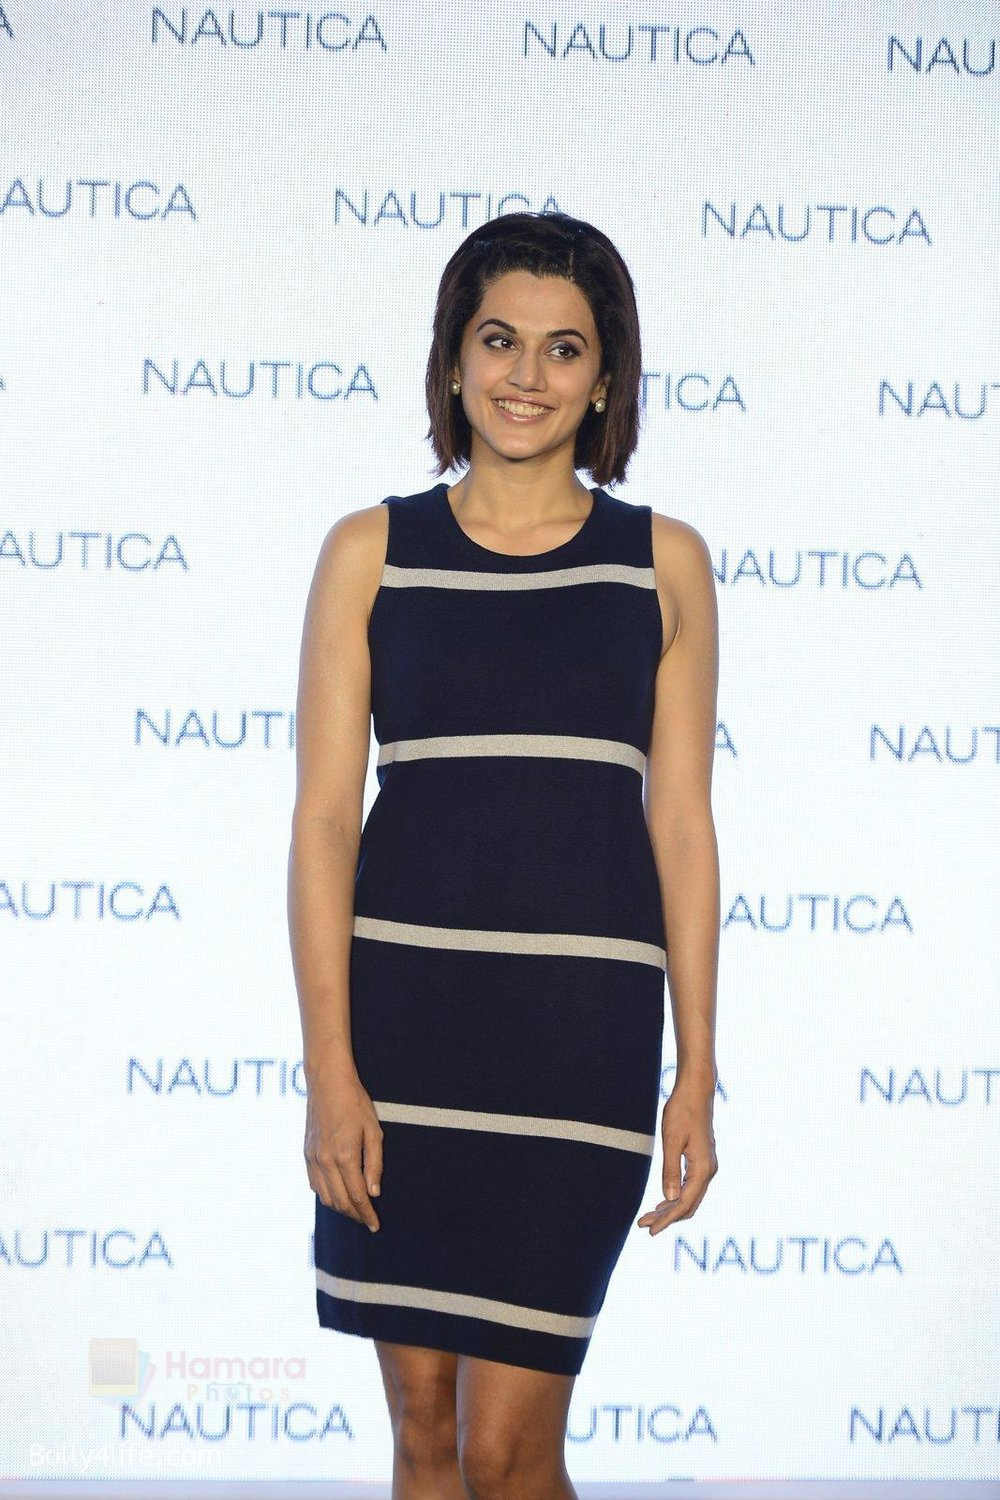 Taapsee-pannu-at-nautica-event-on-28th-Sept-2016-10.jpg